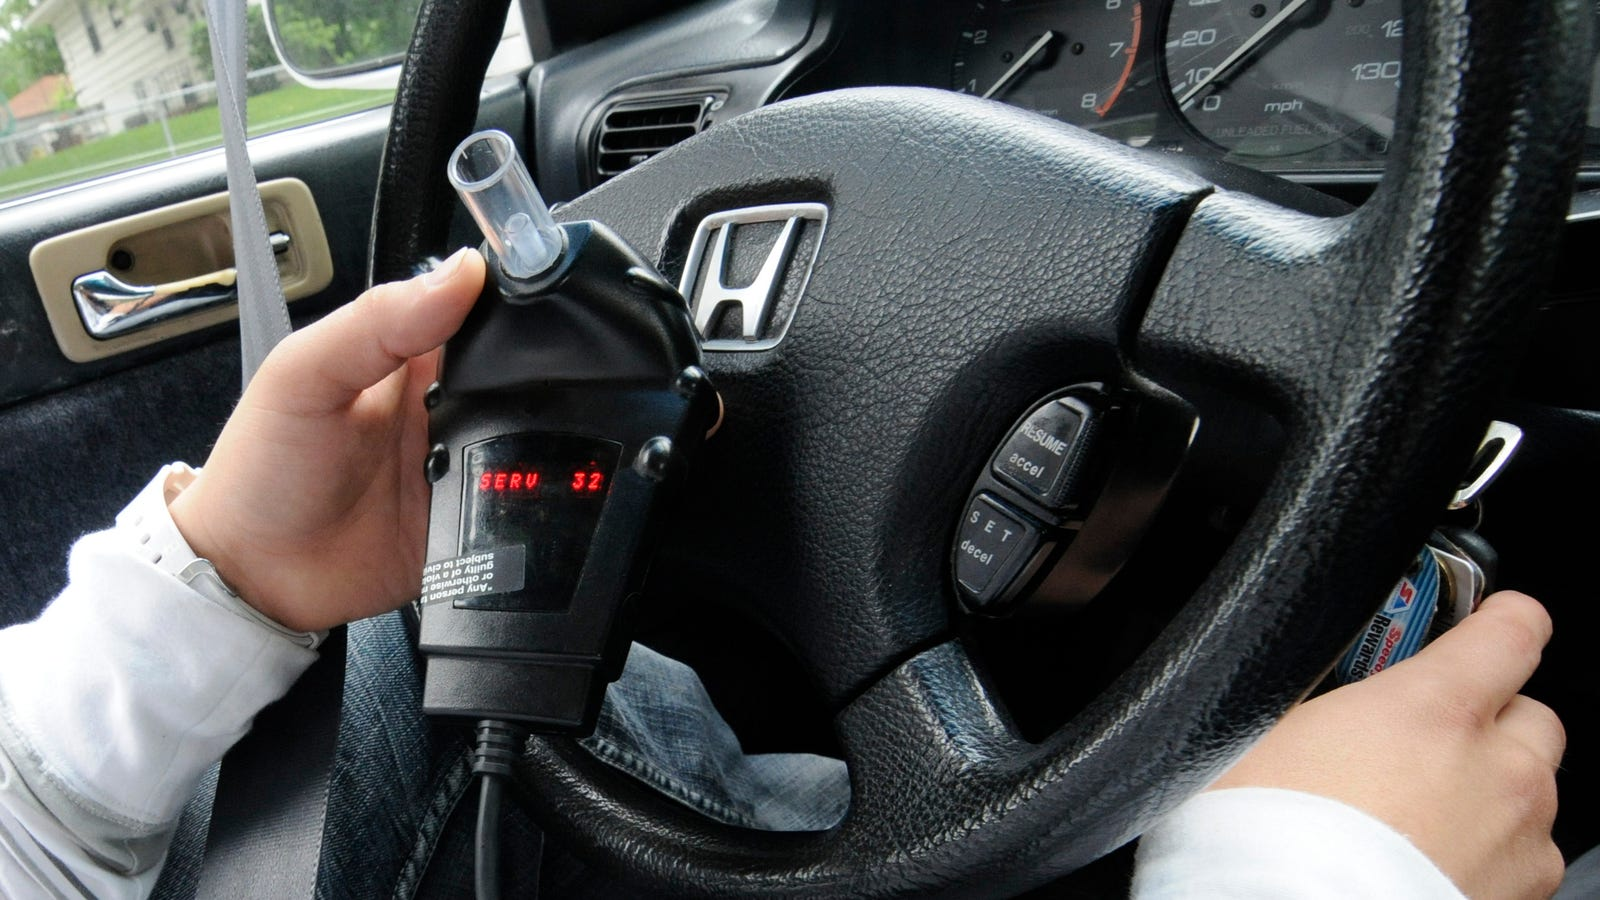 Teen Dies After Sober Driver Hits Her While Using Ignition Interlock Device